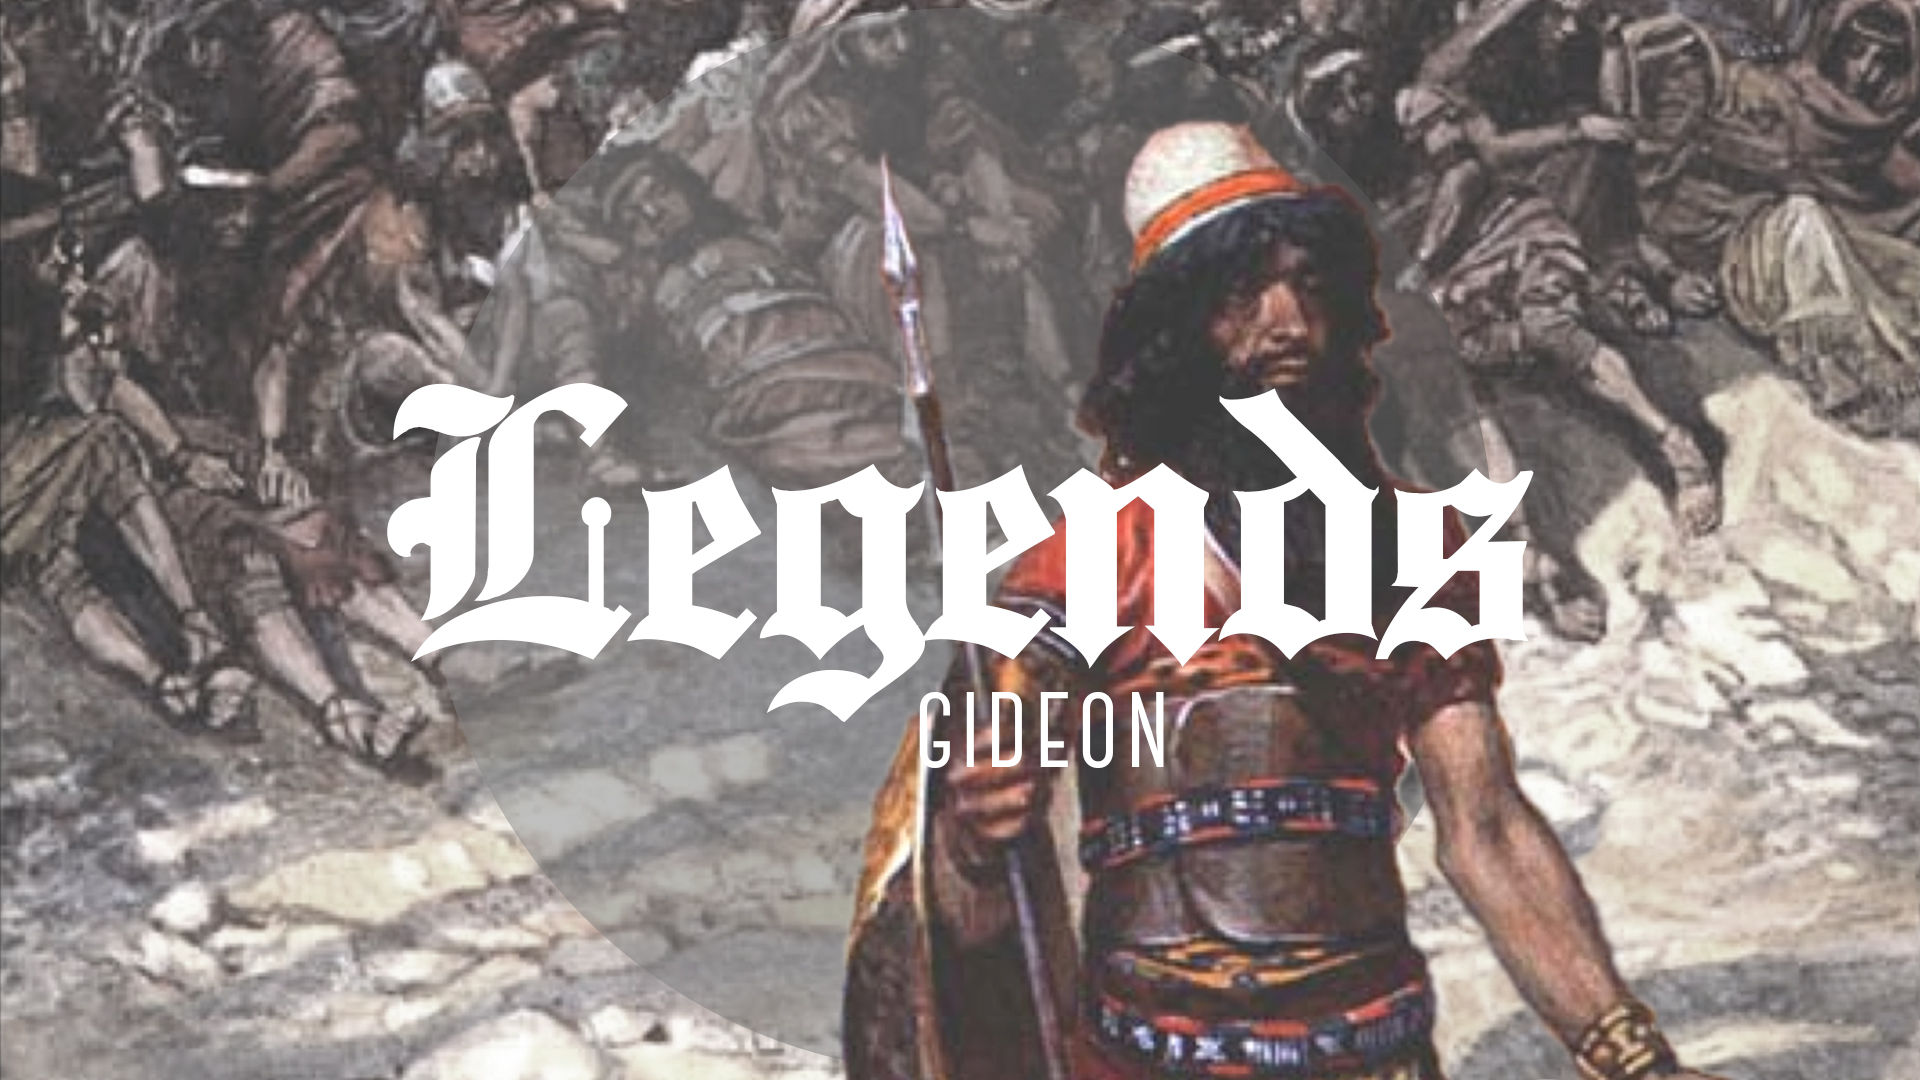 LEGENDS: Gideon - July 9 - 23, 2017